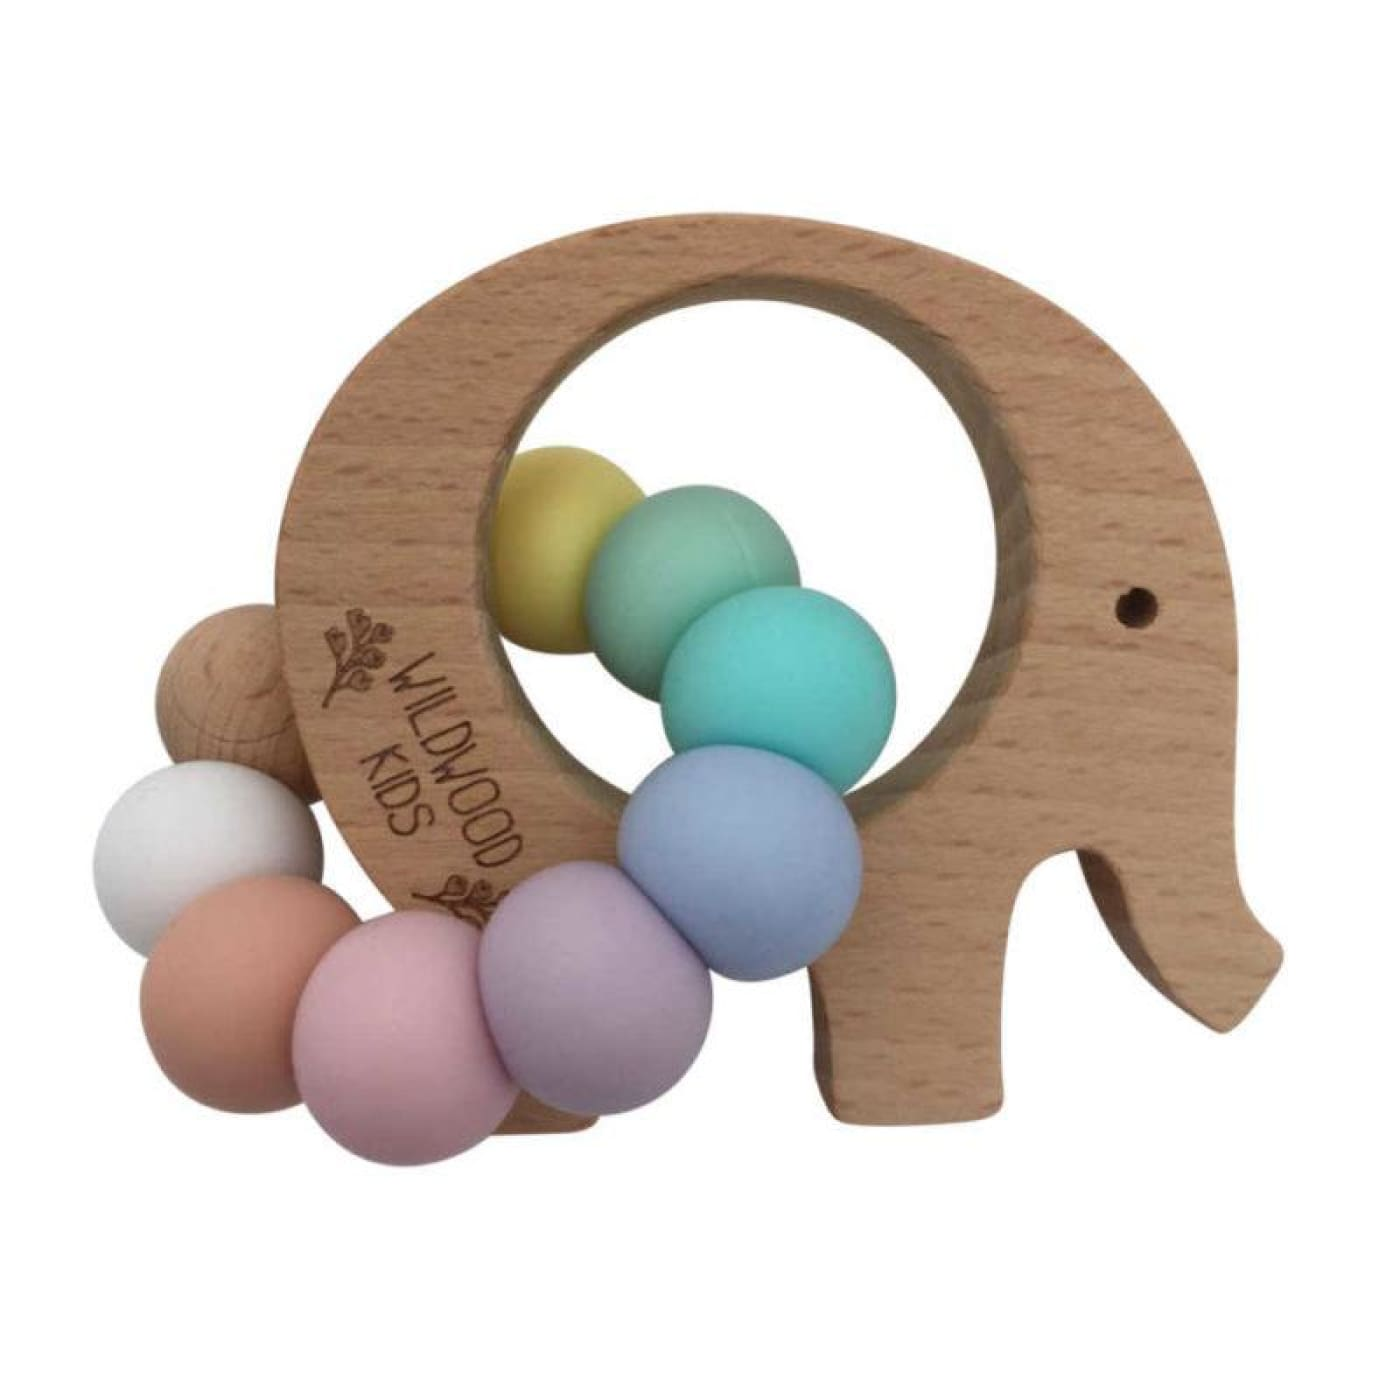 Wildwood Kids Teether - Elephant Rainbow - NURSING & FEEDING - TEETHERS/TEETHING JEWELLERY